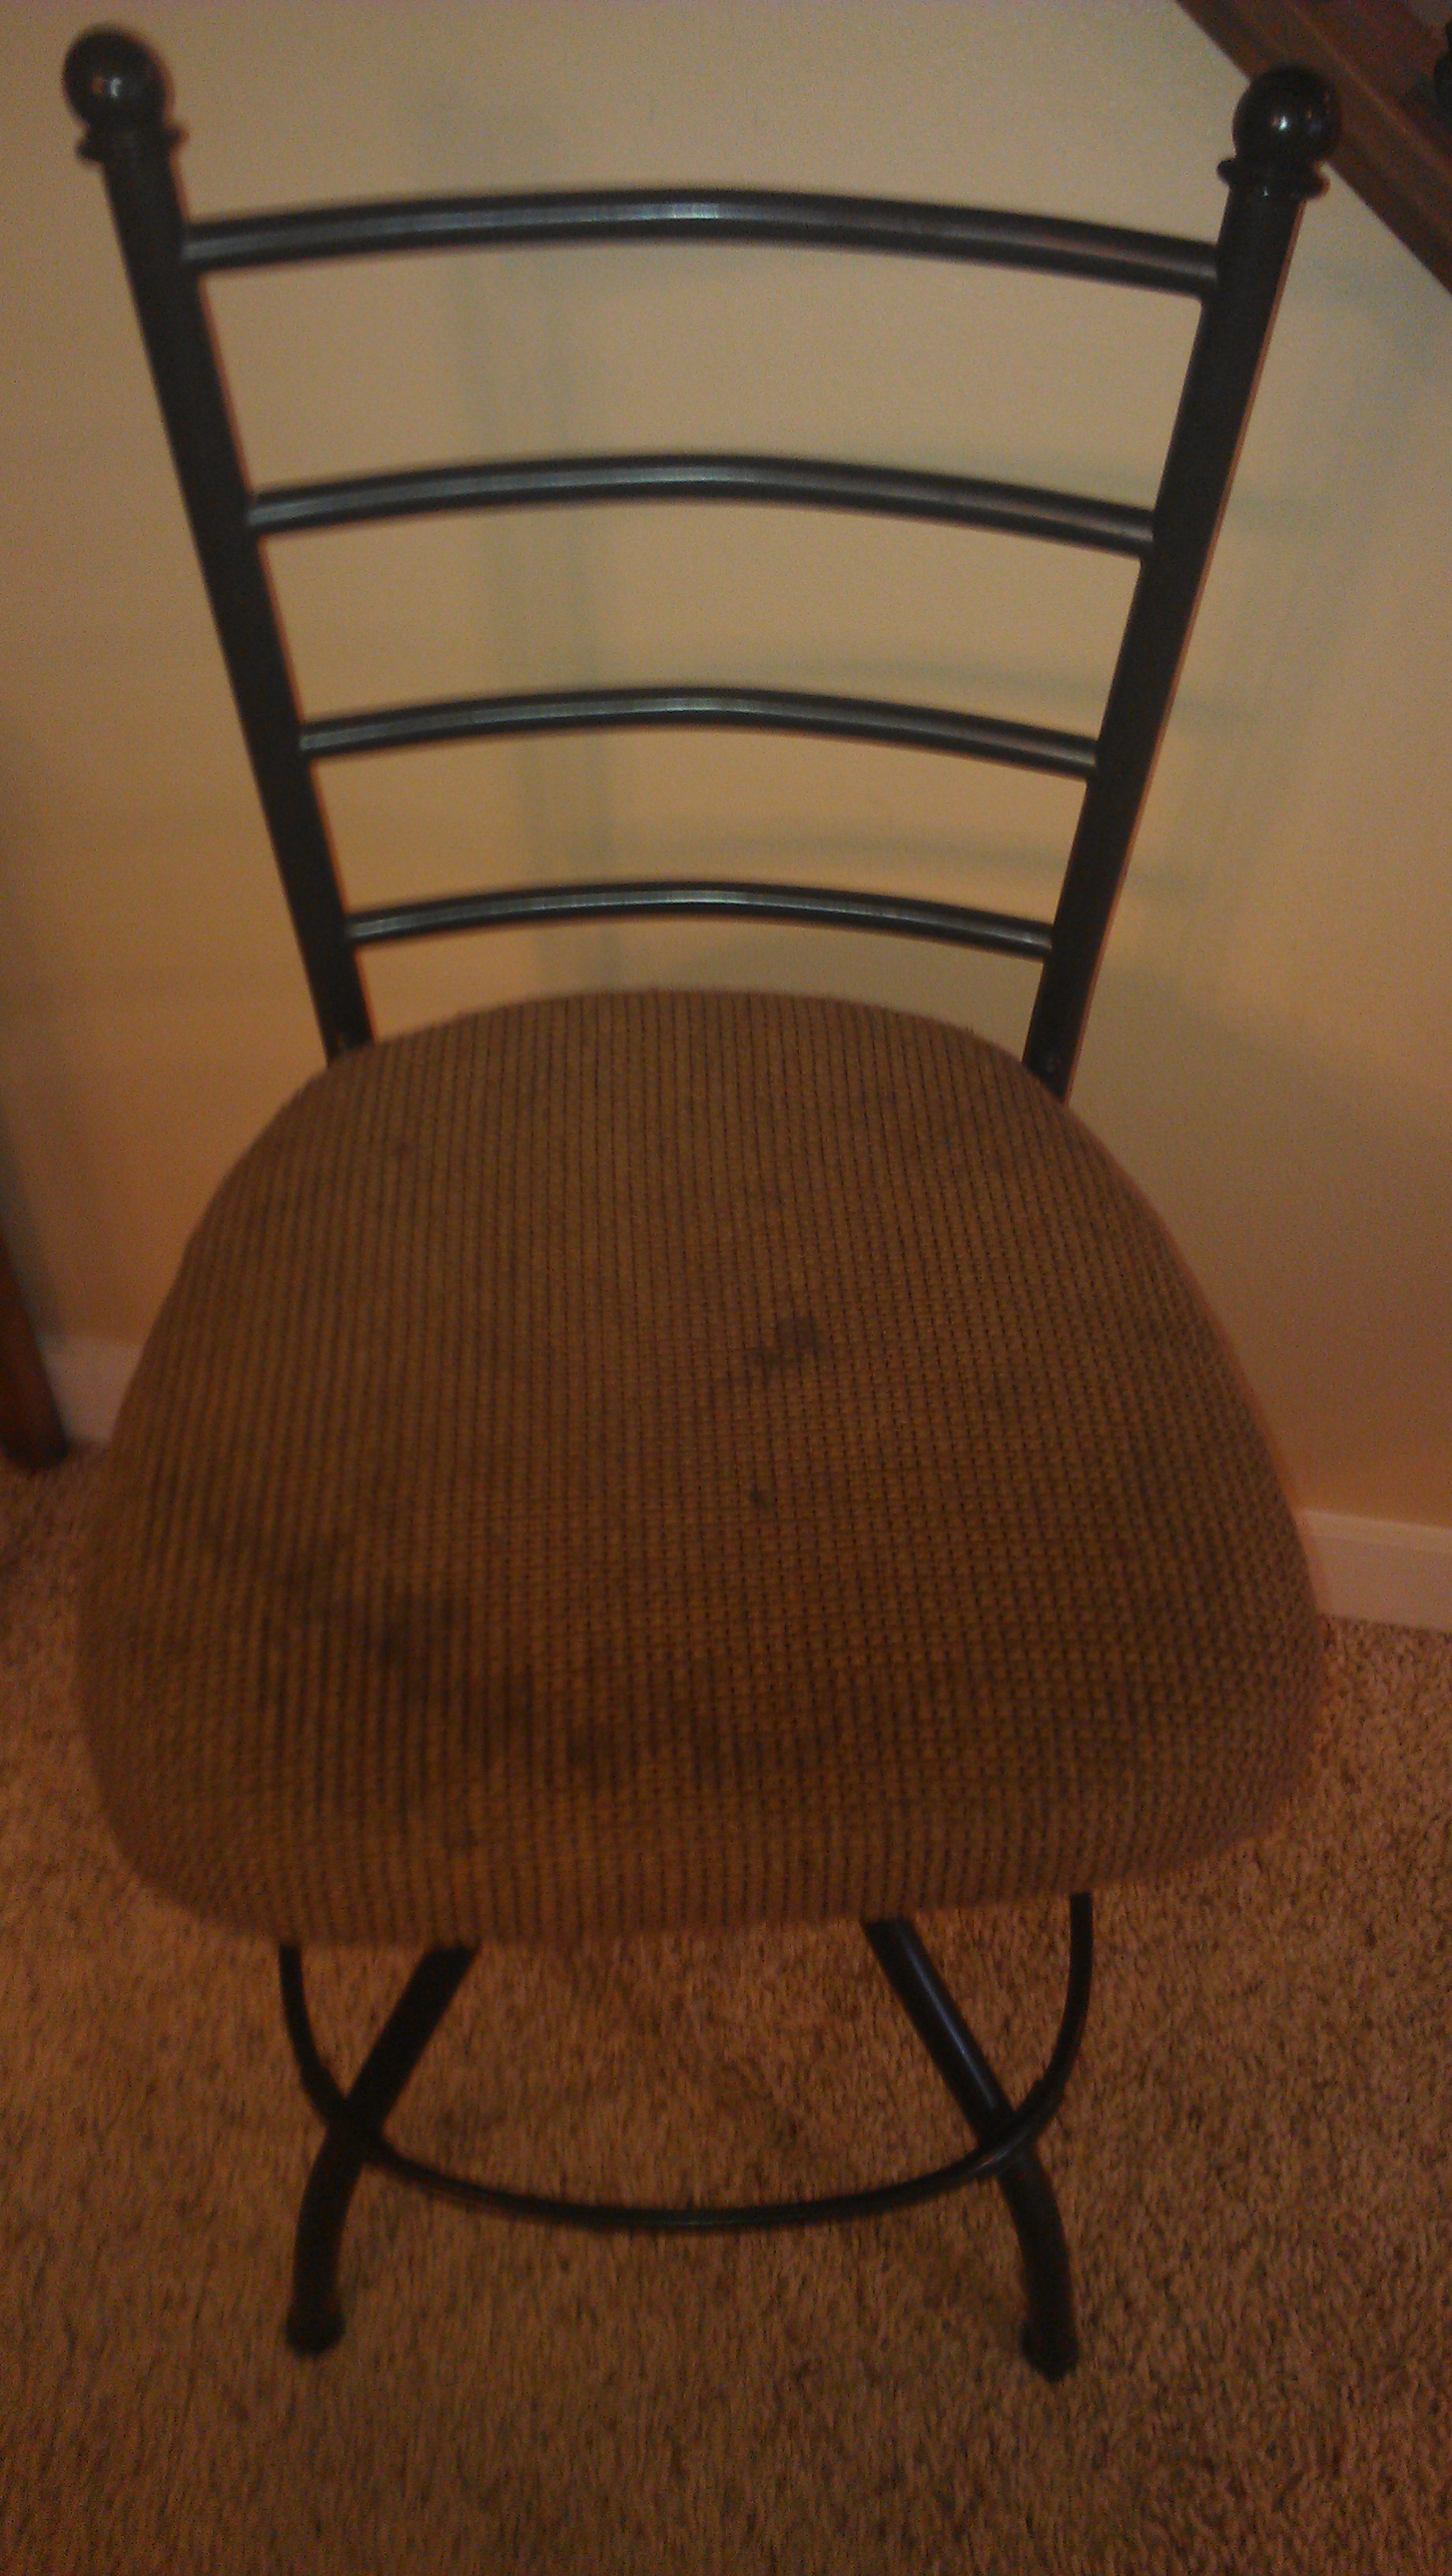 Fine Do It Yourself Project Recovering Bar Stools Boise Real Camellatalisay Diy Chair Ideas Camellatalisaycom